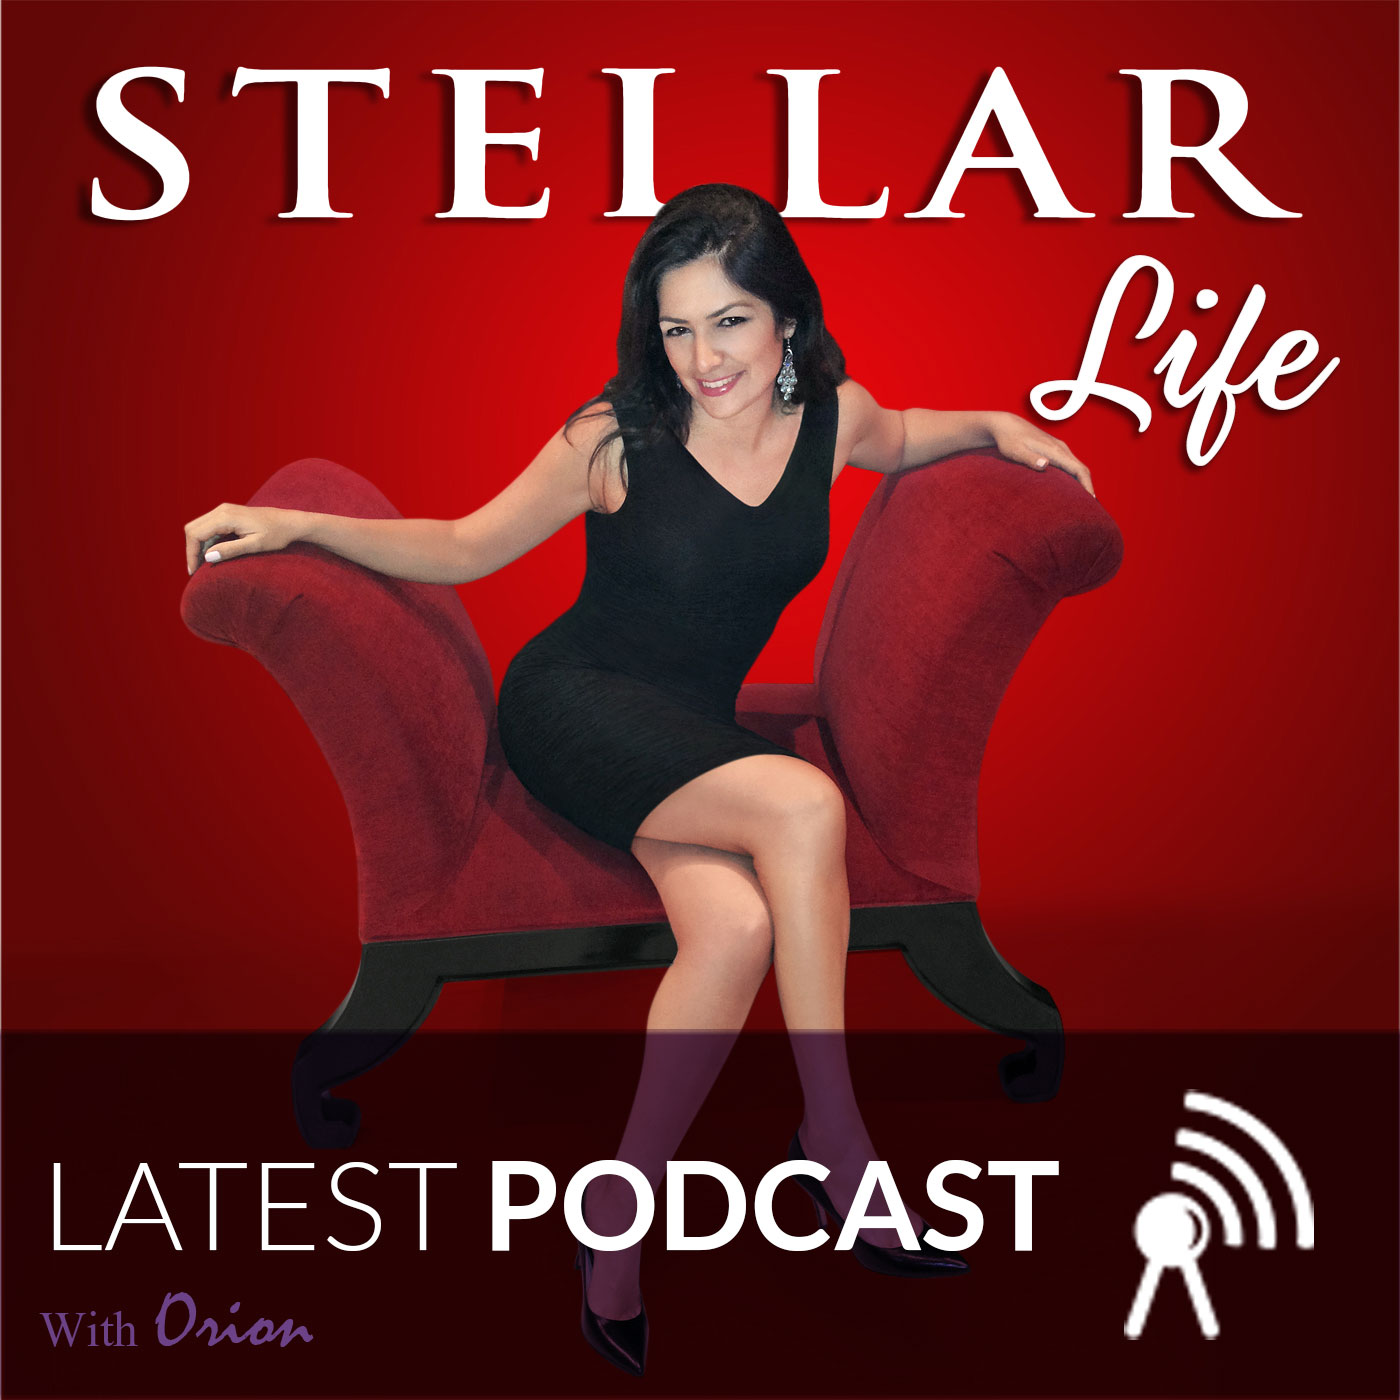 ENJOY THE LATEST PODCAST OF #STELLARLIFE BY ORION